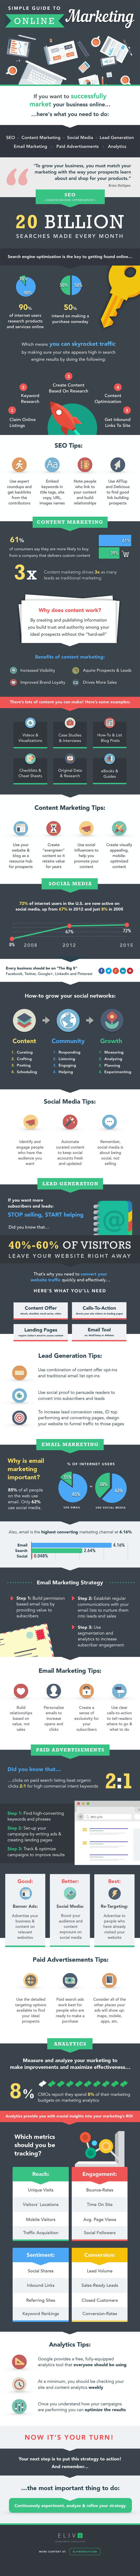 When a small business provides value, a customer is willing to repay that with trust. They are more likely to buy the business' products and services. Here is a simple guide to Online Marketing (Infographic)